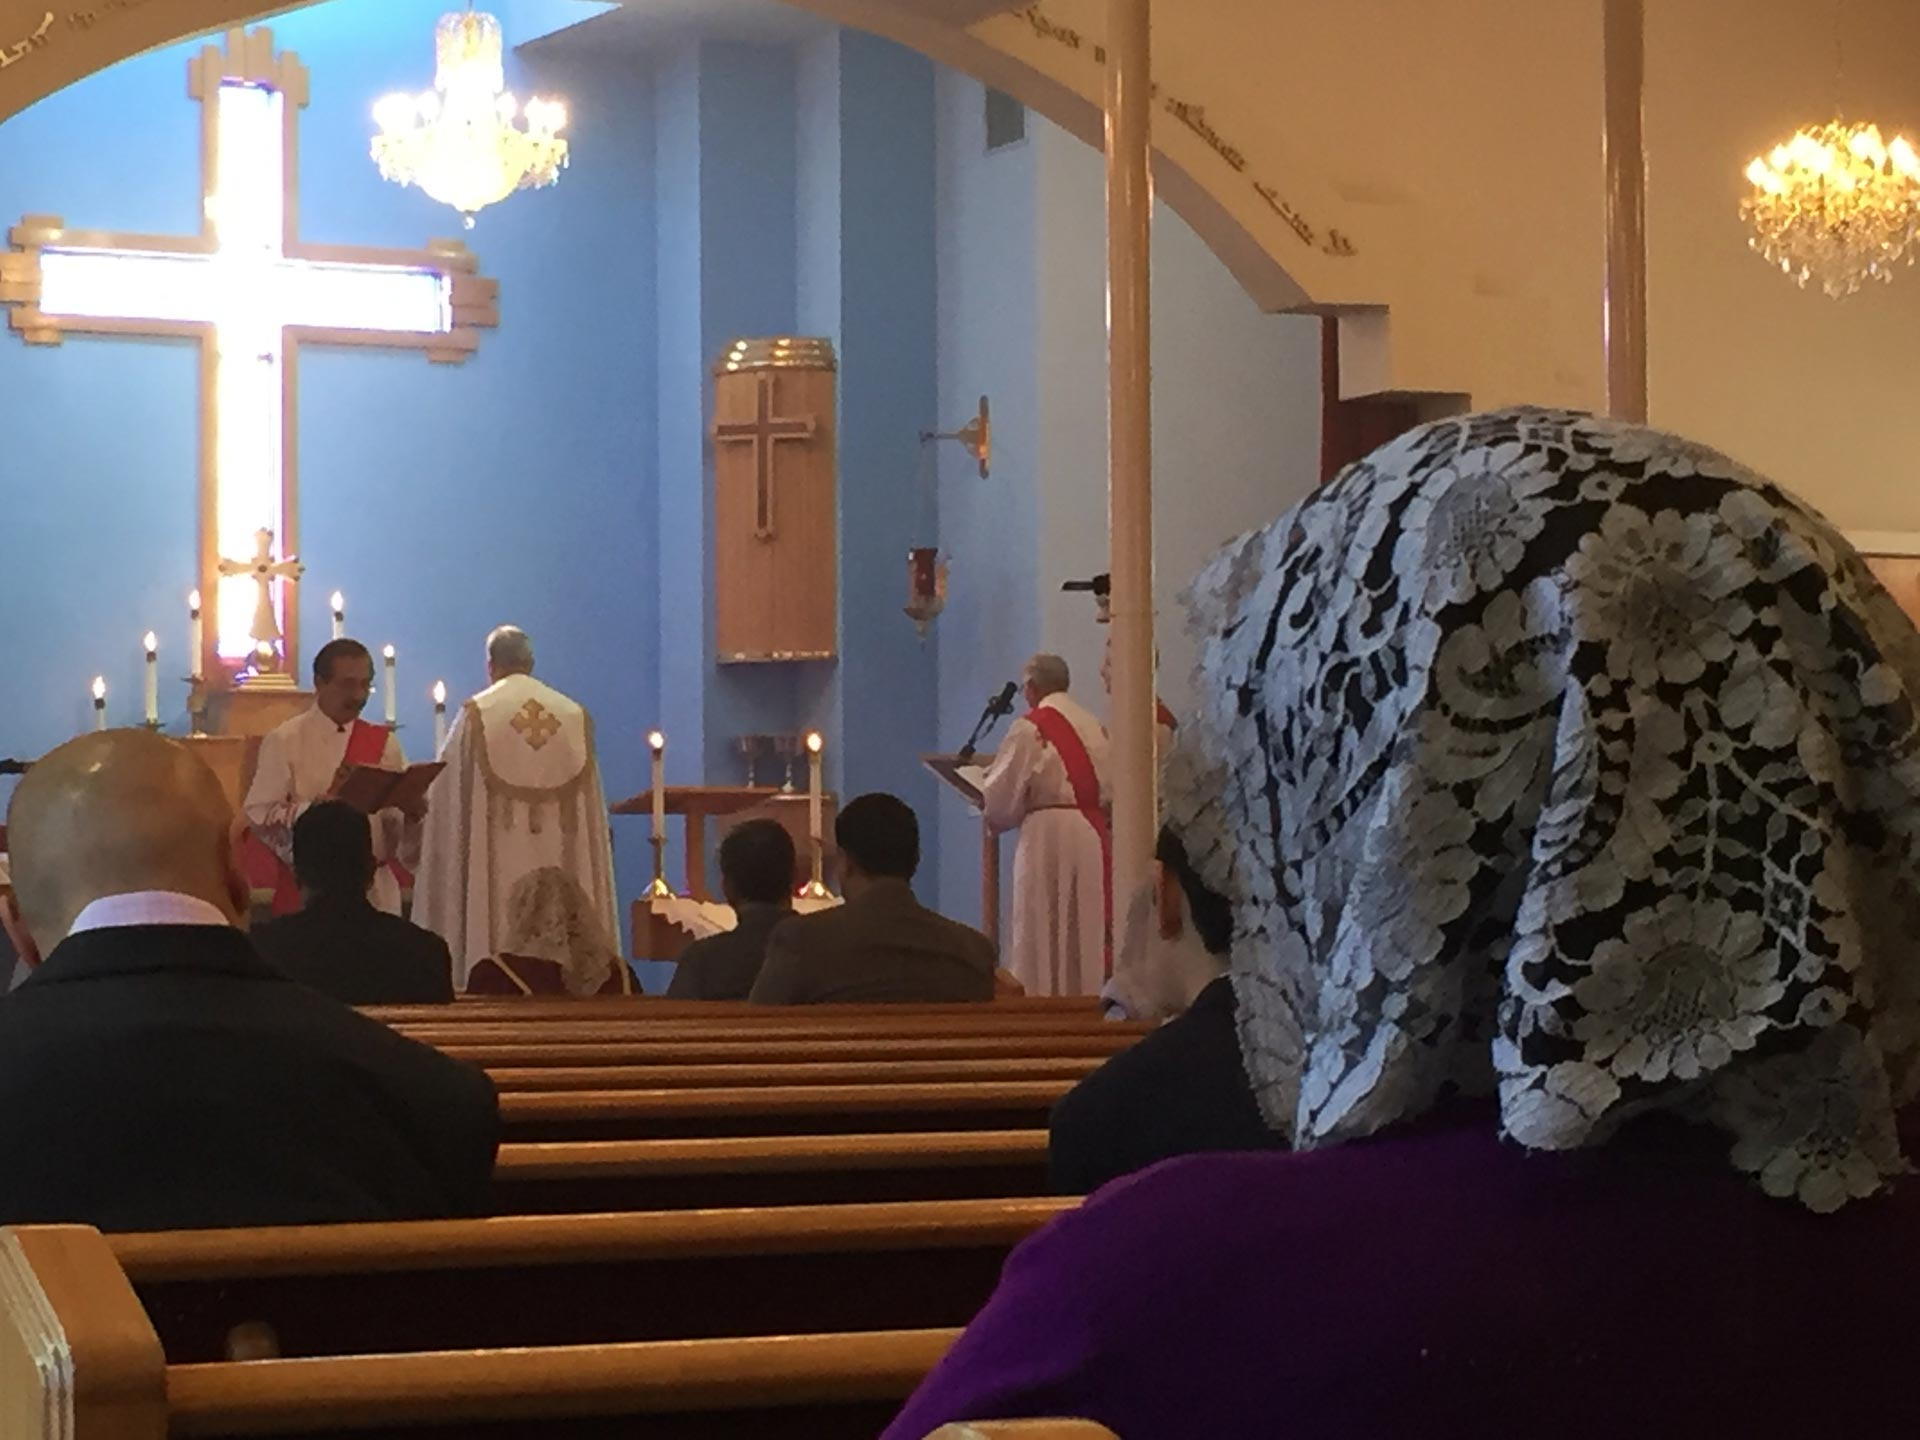 Parishioners worship at Mar Yosip Assyrian Church of the East in Nov. 2015. Assyrians -- one of the Middle East's oldest ethno-religious groups -- now face extinction at the hands of the self-described Islamic State.